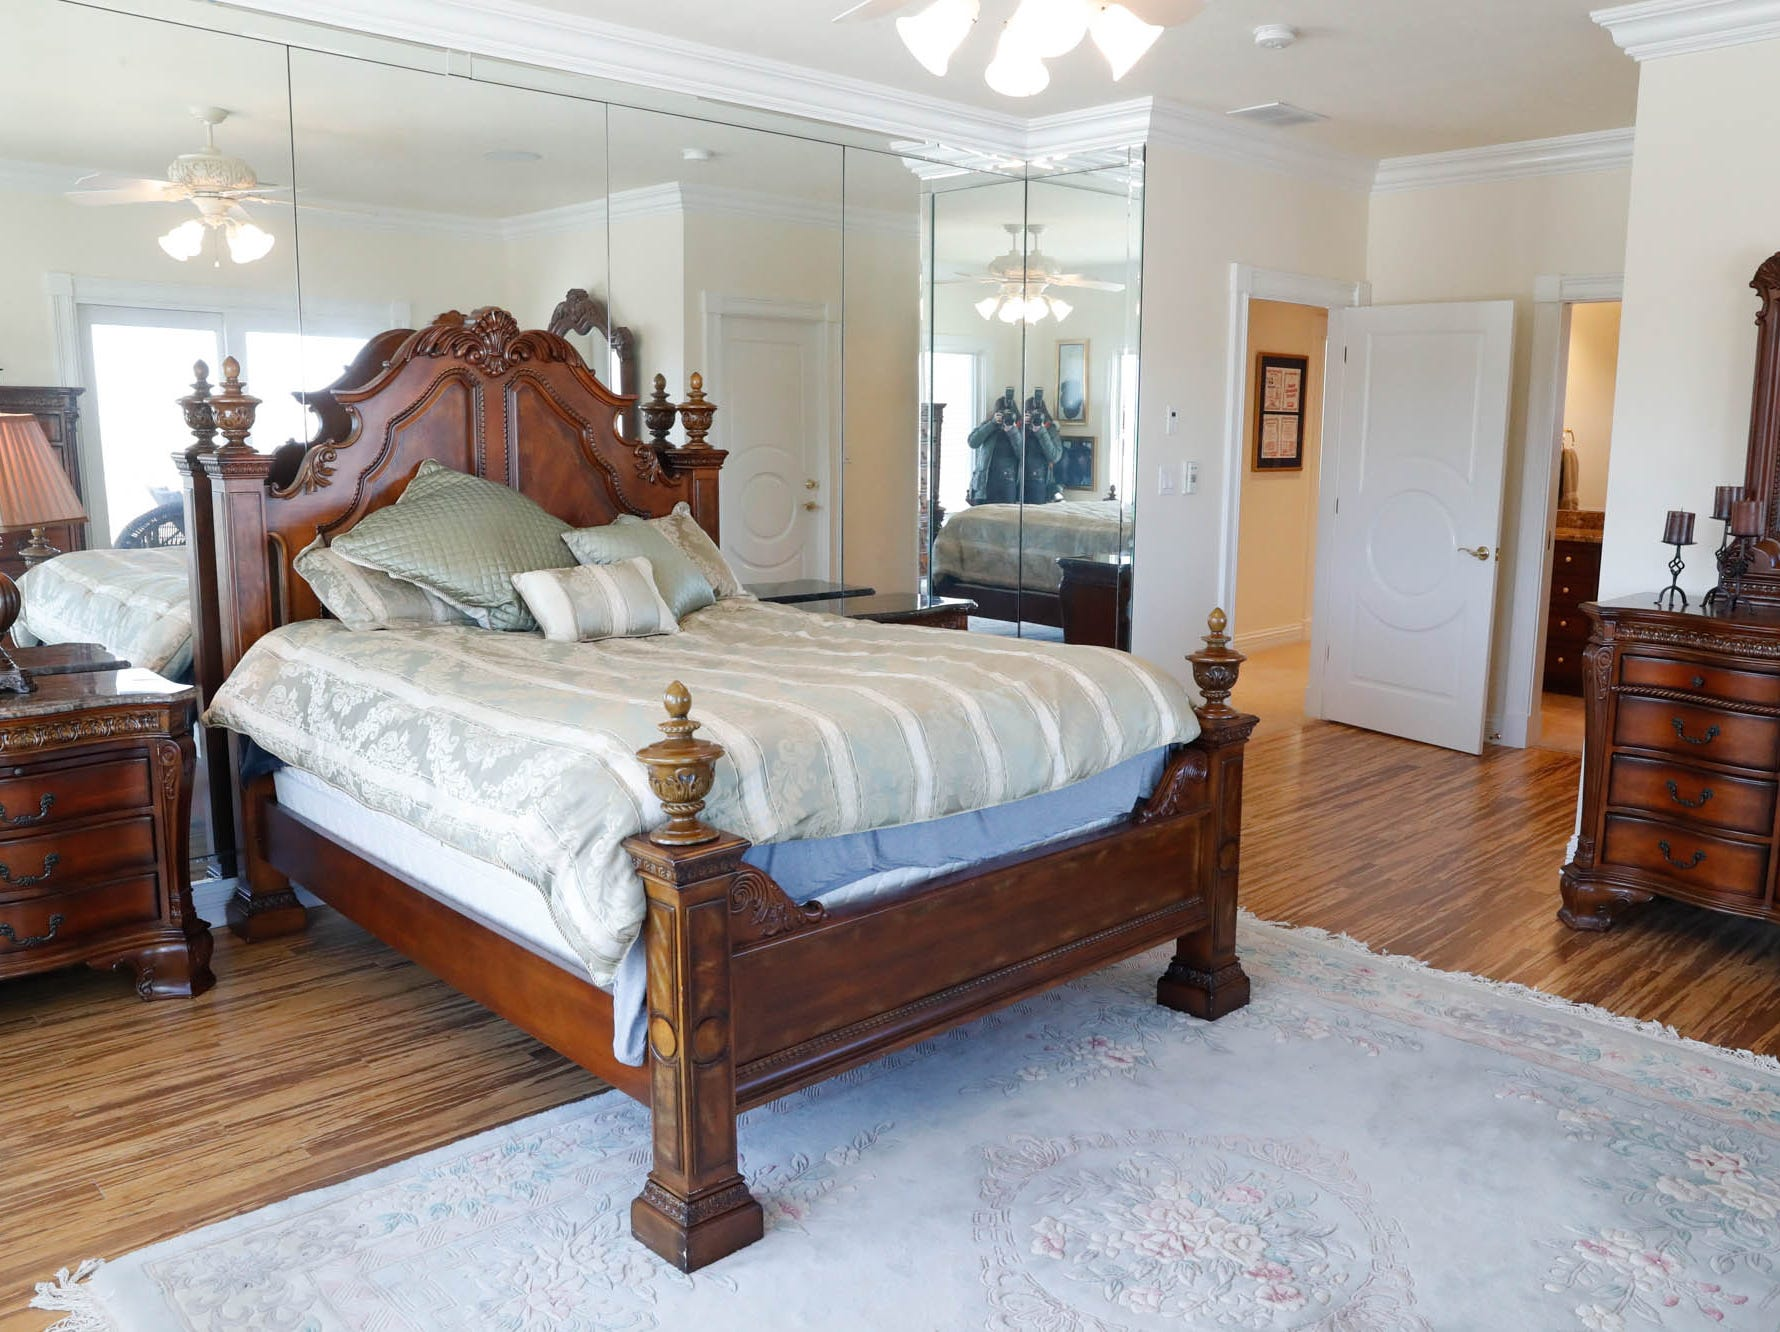 A bedroom features mirrored walls at a Greenwood home up for sale at 1216 Stone Ridge Court, Greenwood, Ind. on Wednesday, Jan. 30, 2019. The home features 8,234 square feet, four bedrooms, two master suites, a 10 car garage, and an exercise room.